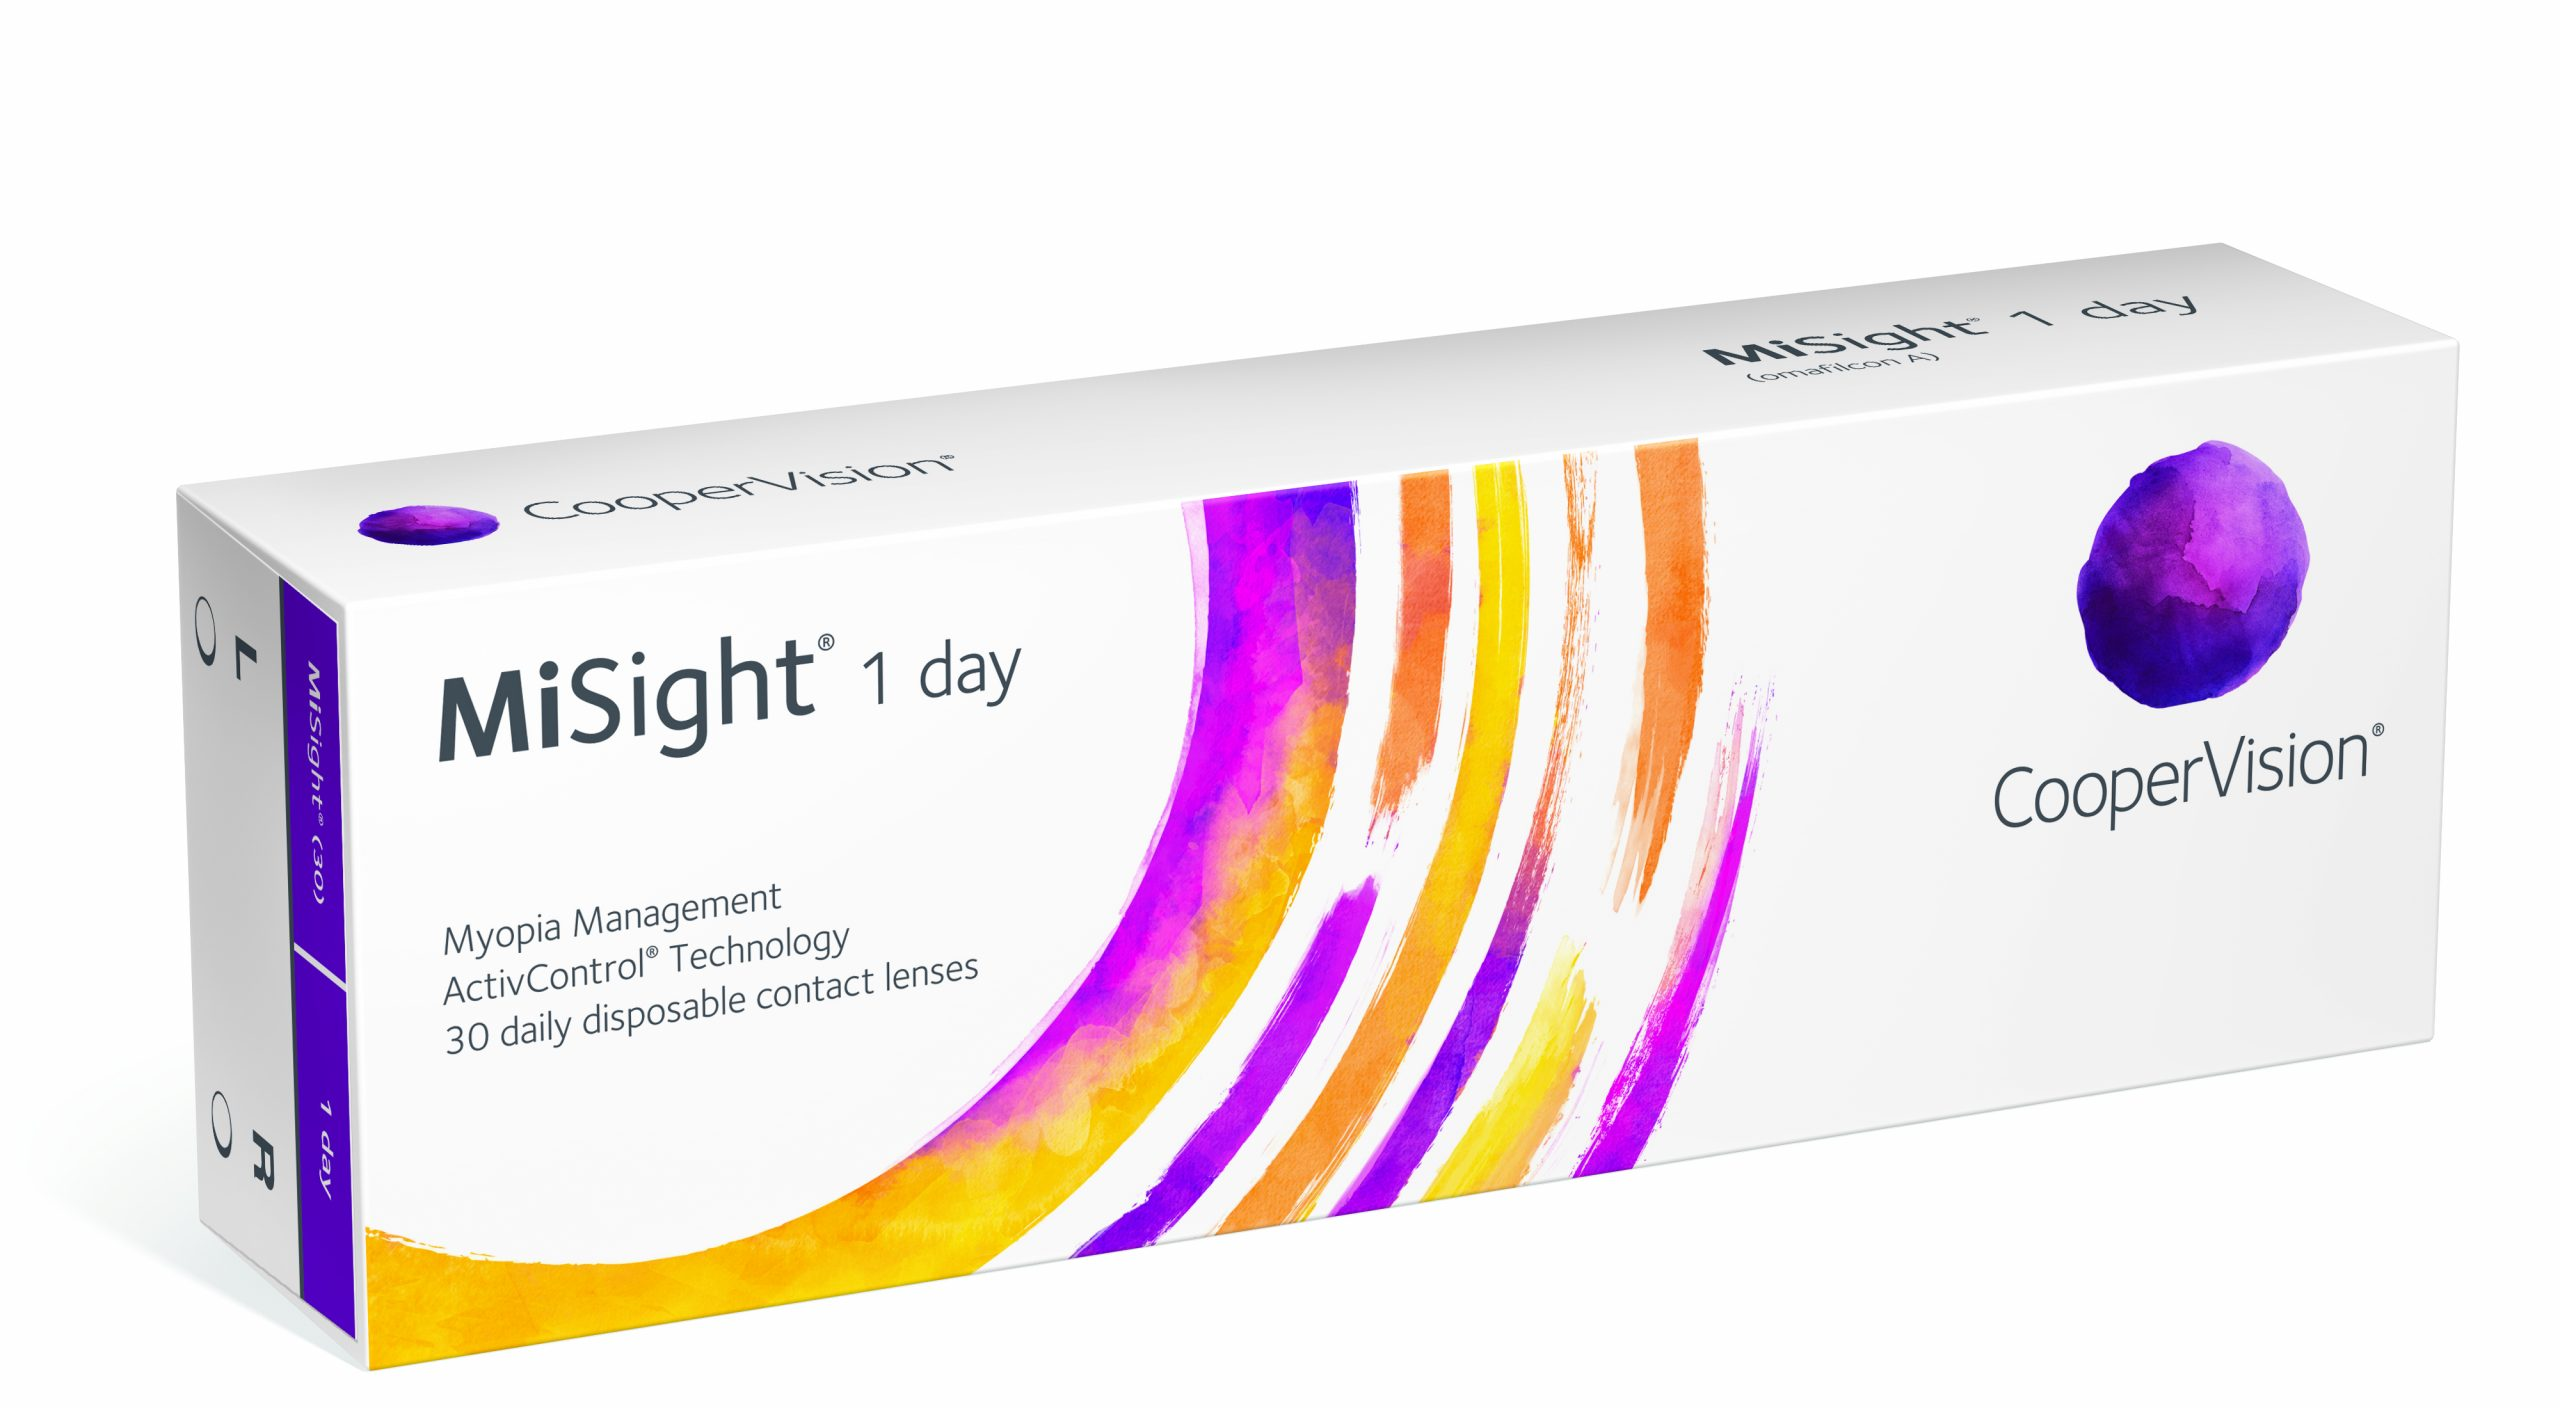 A box of 30 pack disposable MiSight Contact Lenses